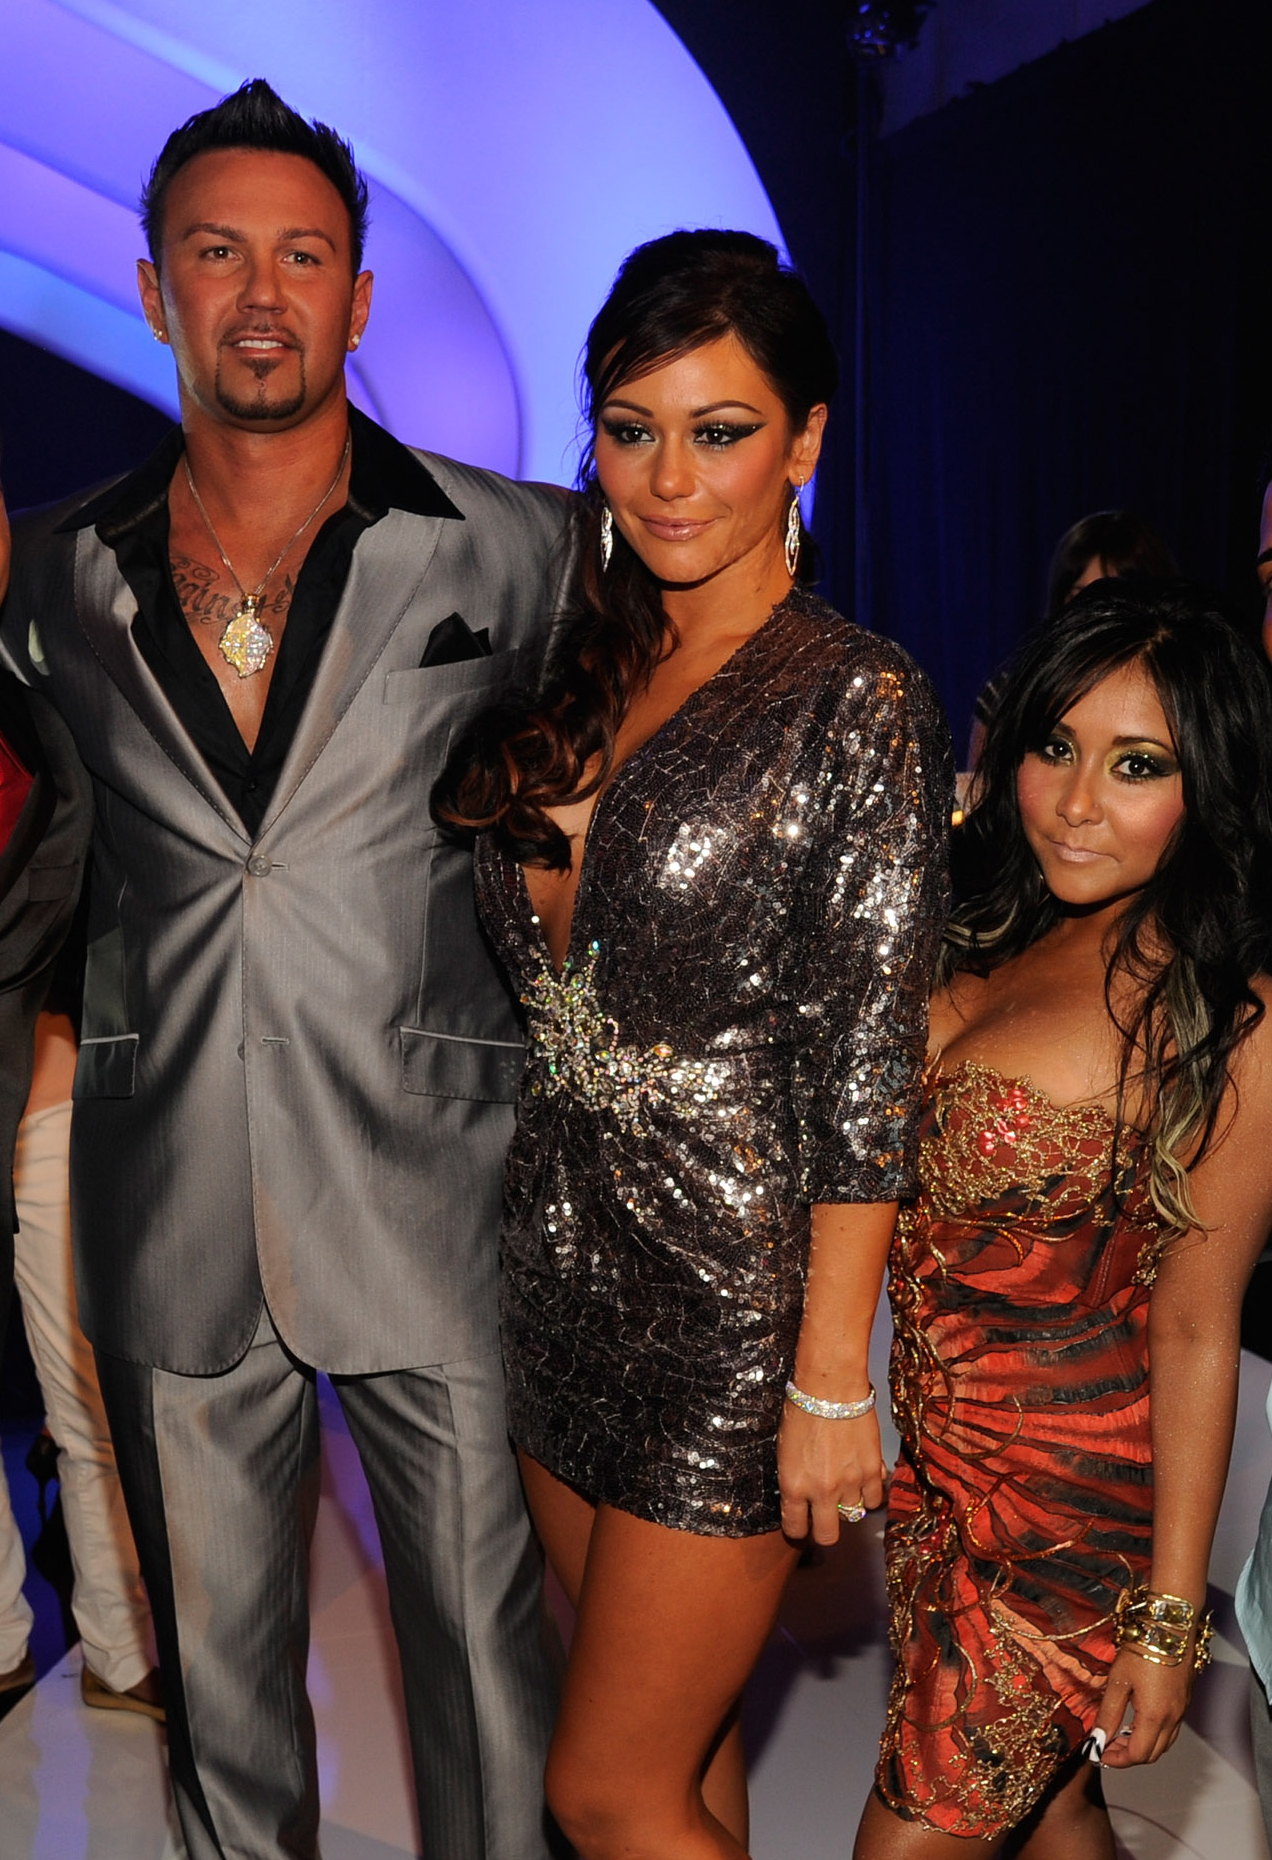 Roger Mathews Slams Snooki Amid Drama With Jen Farley - Roger Mathews, Jenni 'JWoWW' Farley and Nicole 'Snooki' Polizzi and Jionni LaValle arrive at The 28th Annual MTV Video Music Awards on August 28, 2011 in Los Angeles, California.